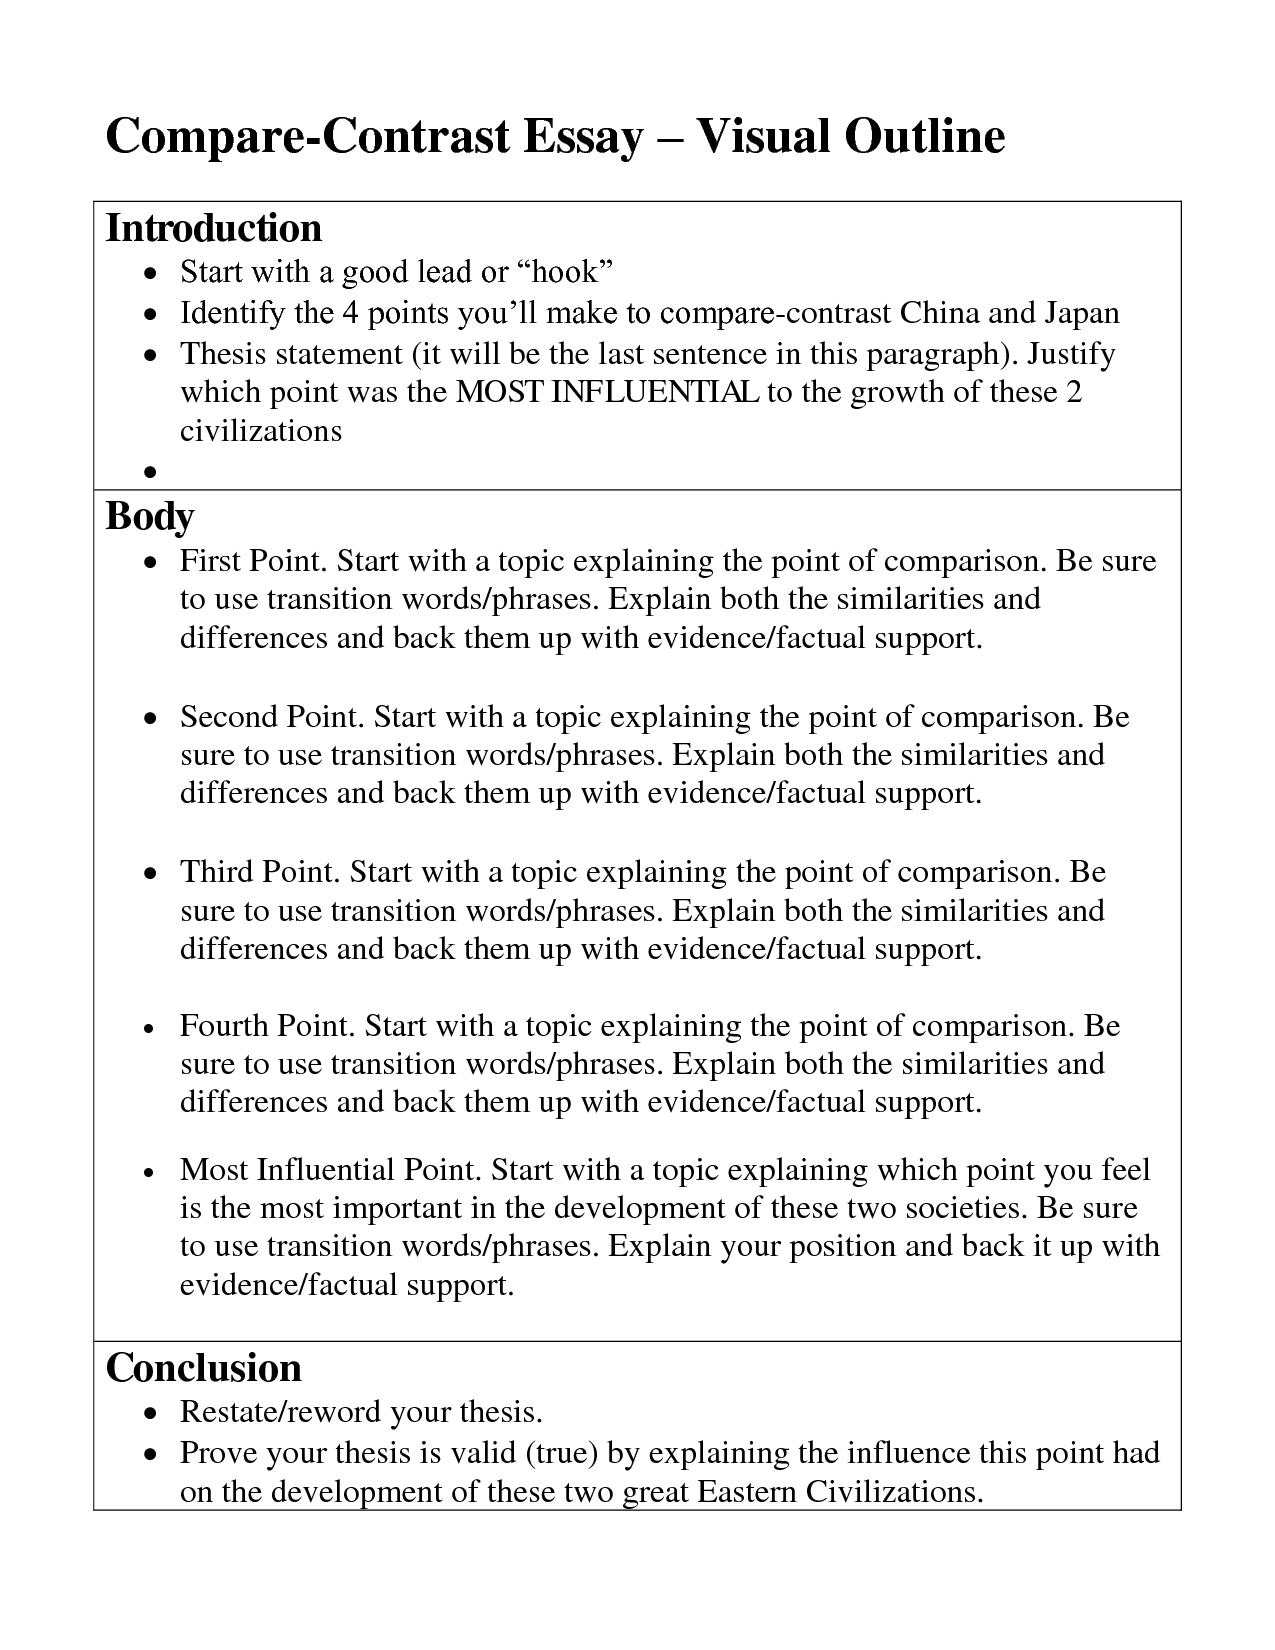 005 Essay Example Compare And Contrast Ideas Unforgettable Prompts High School For 7th Grade Full